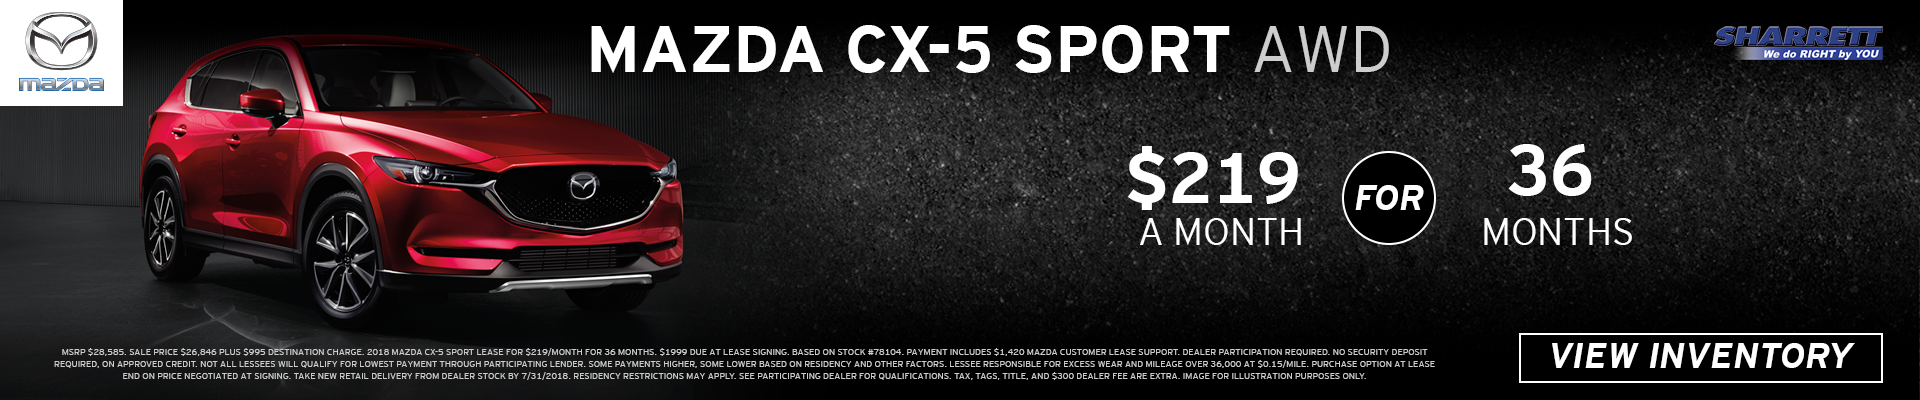 Lease a Mazda CX-5 Sport AWD for $219/mo for 36 months